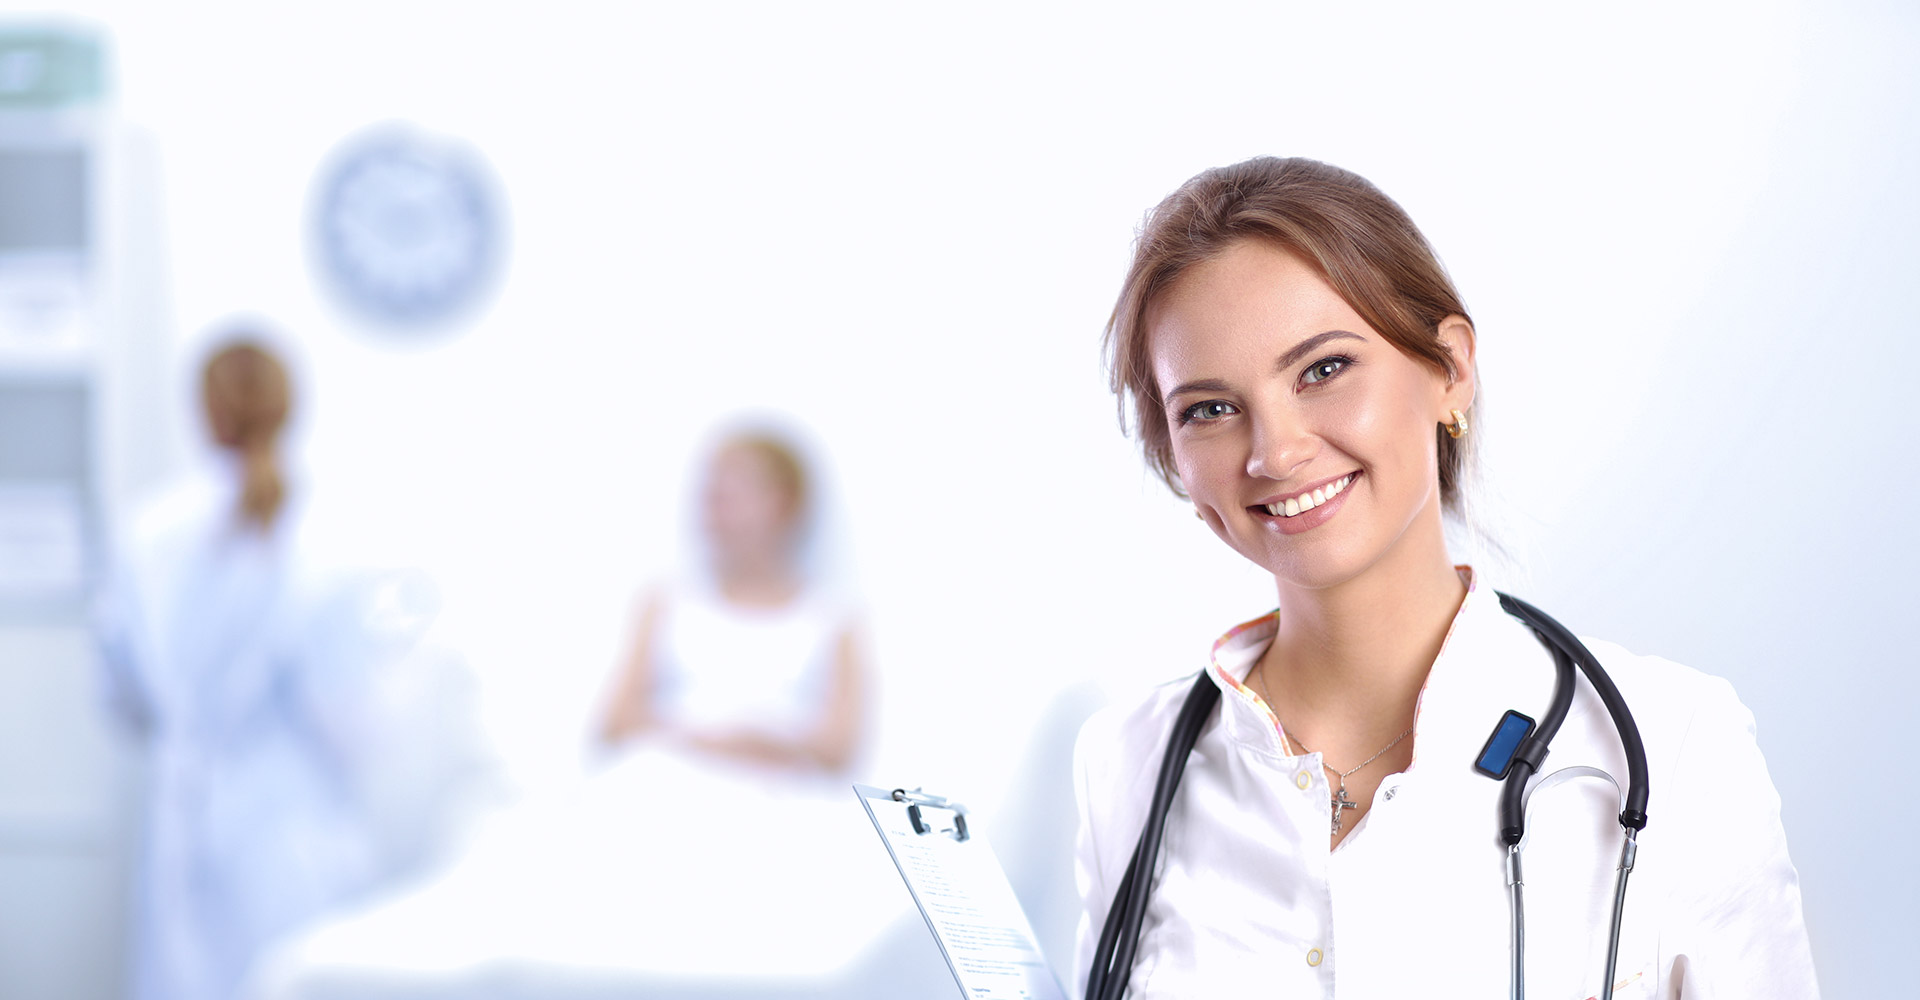 Image of a female doctor smiling at the camera with a clipboard in hand